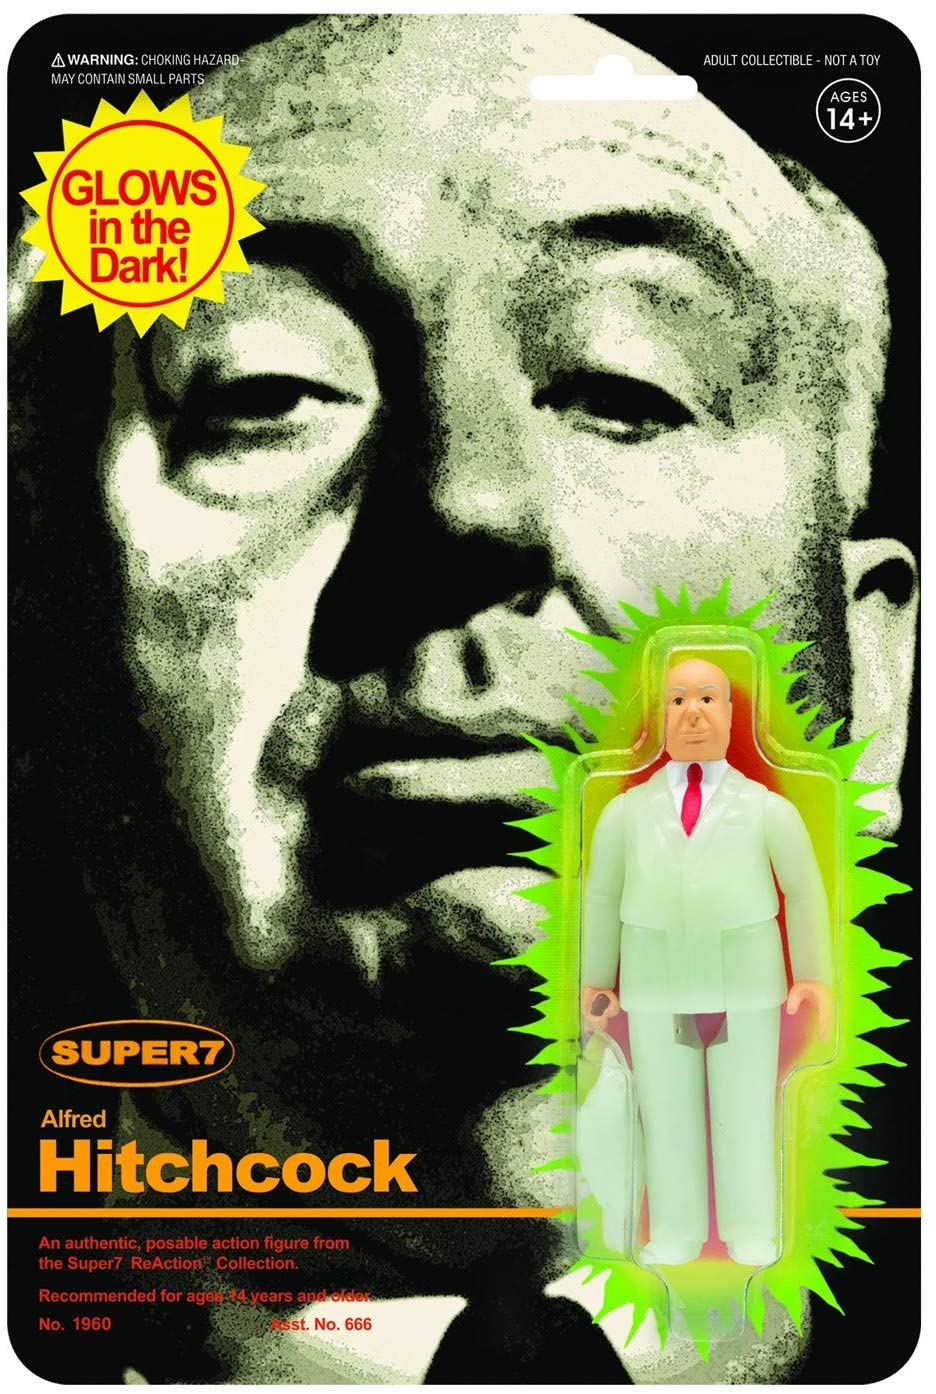 Super7 ReAction: Alfred Hitchcock Glow in the Dark Action Figure